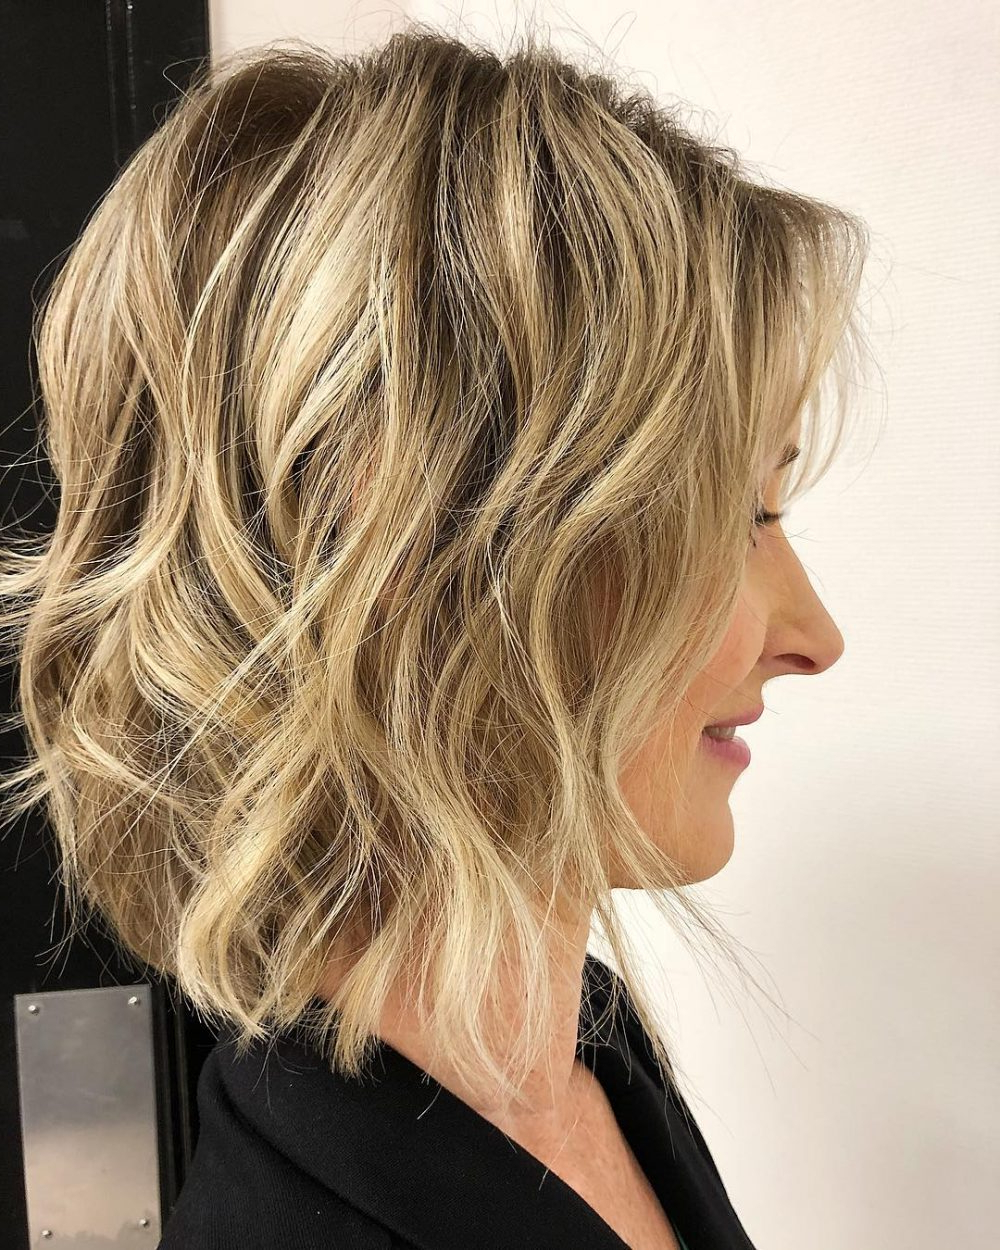 43 Perfect Short Hairstyles For Fine Hair In 2018 In Short Trendy Hairstyles For Fine Hair (View 5 of 25)